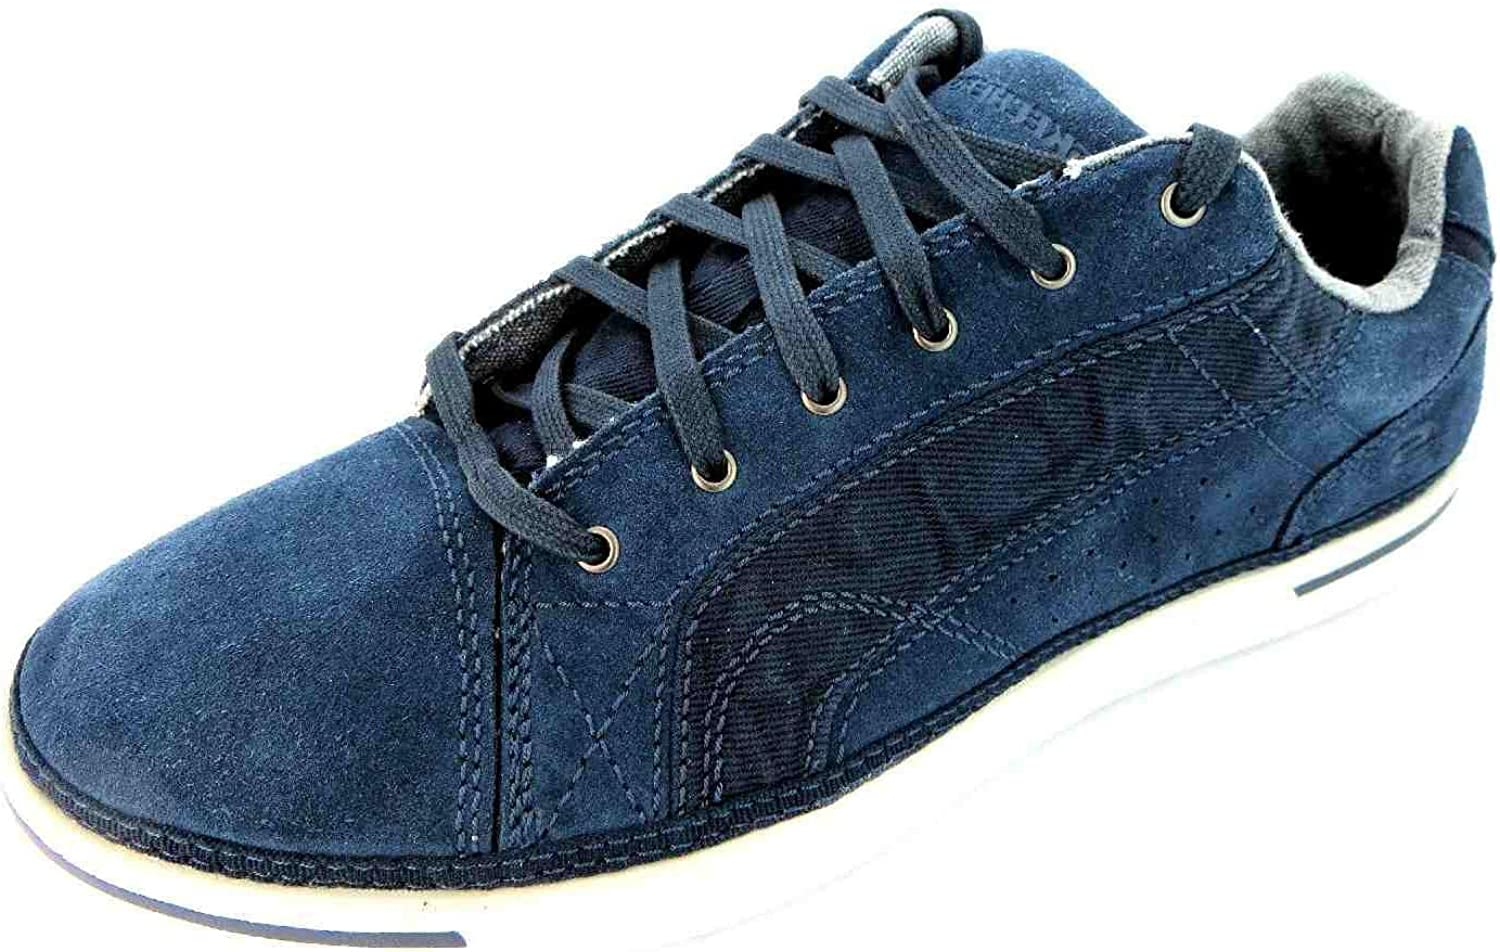 SKECHERS Relaxed Fit: Landen Buford